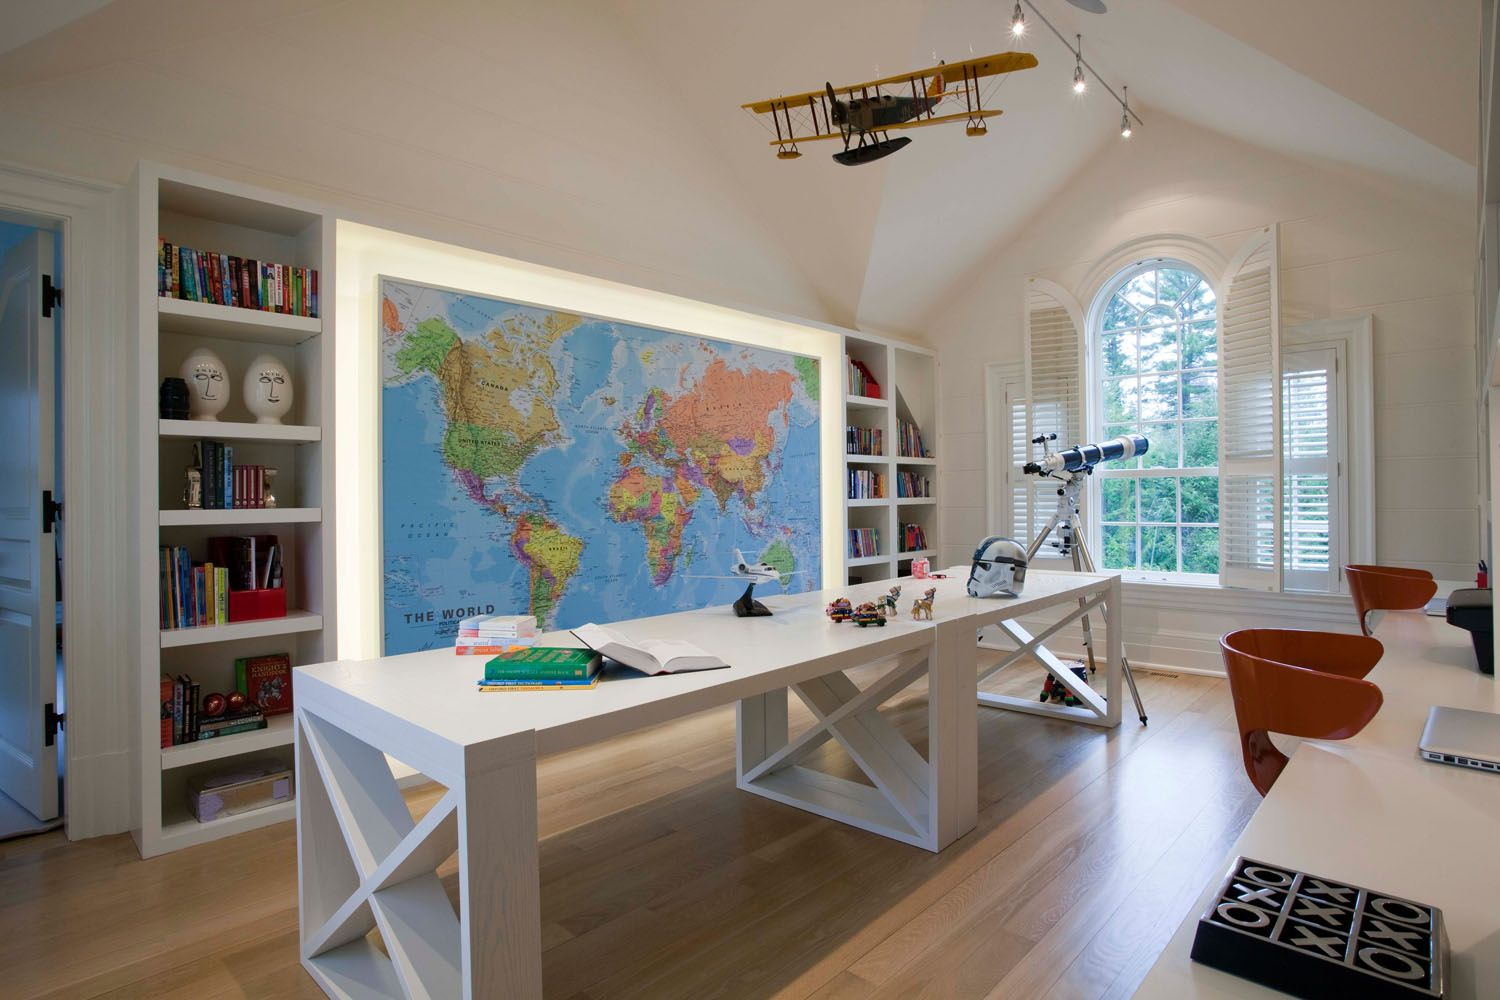 7 Inspiring Kid Room Color Options For Your Little Ones: Love The Bookshelves And The Big Map In This Room